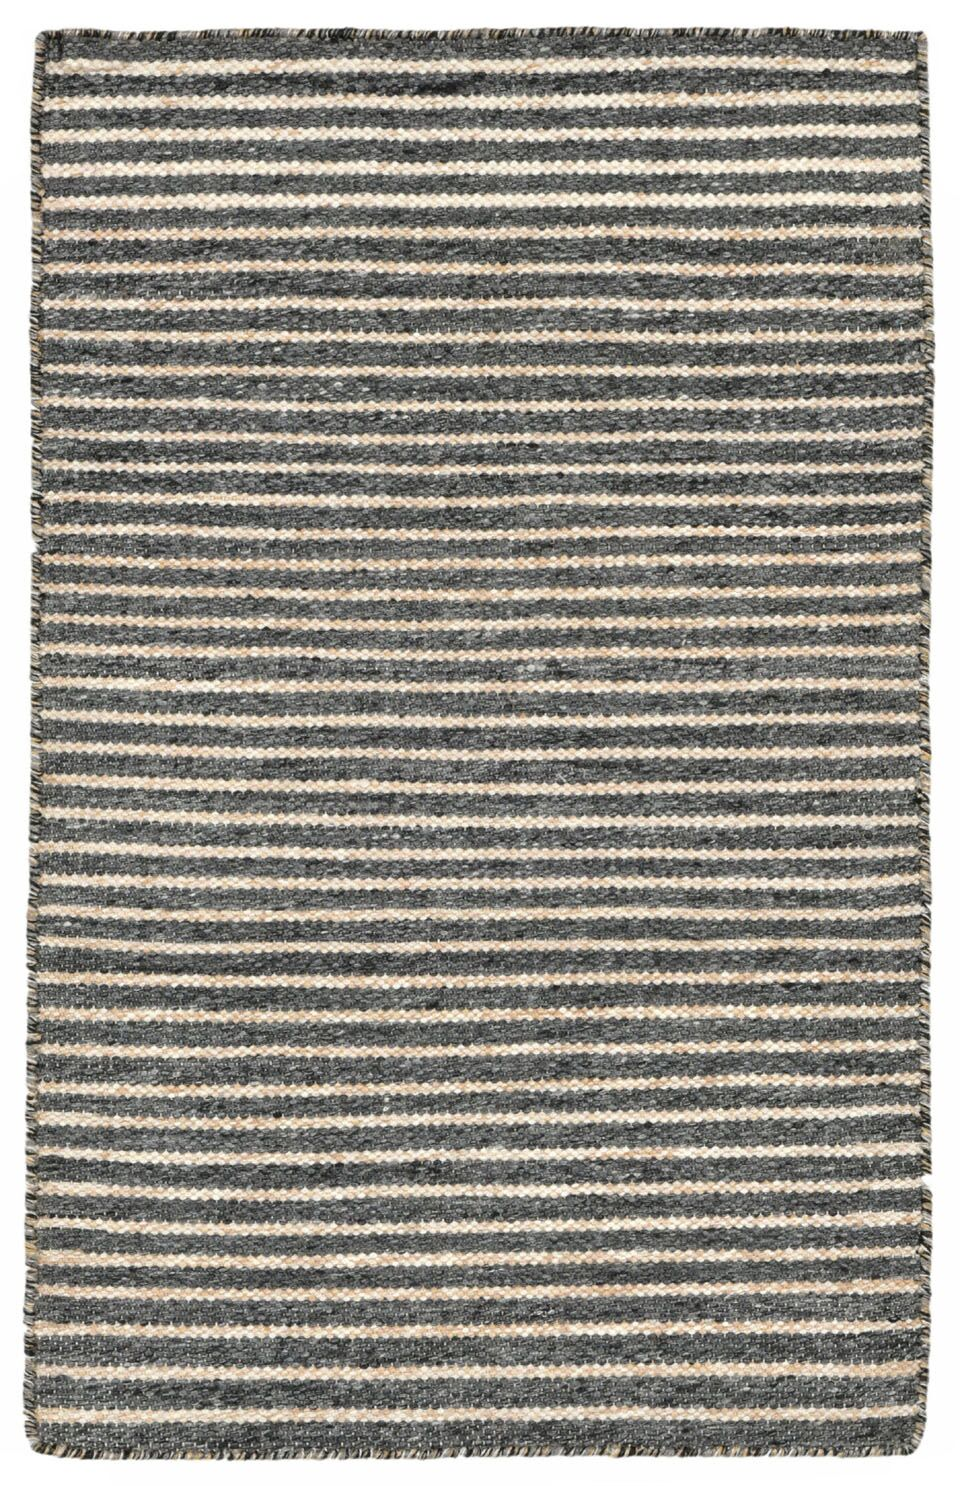 Blueridge Hand-Woven Charcoal Indoor/Outdoor Area Rug Rug Size: 3'6